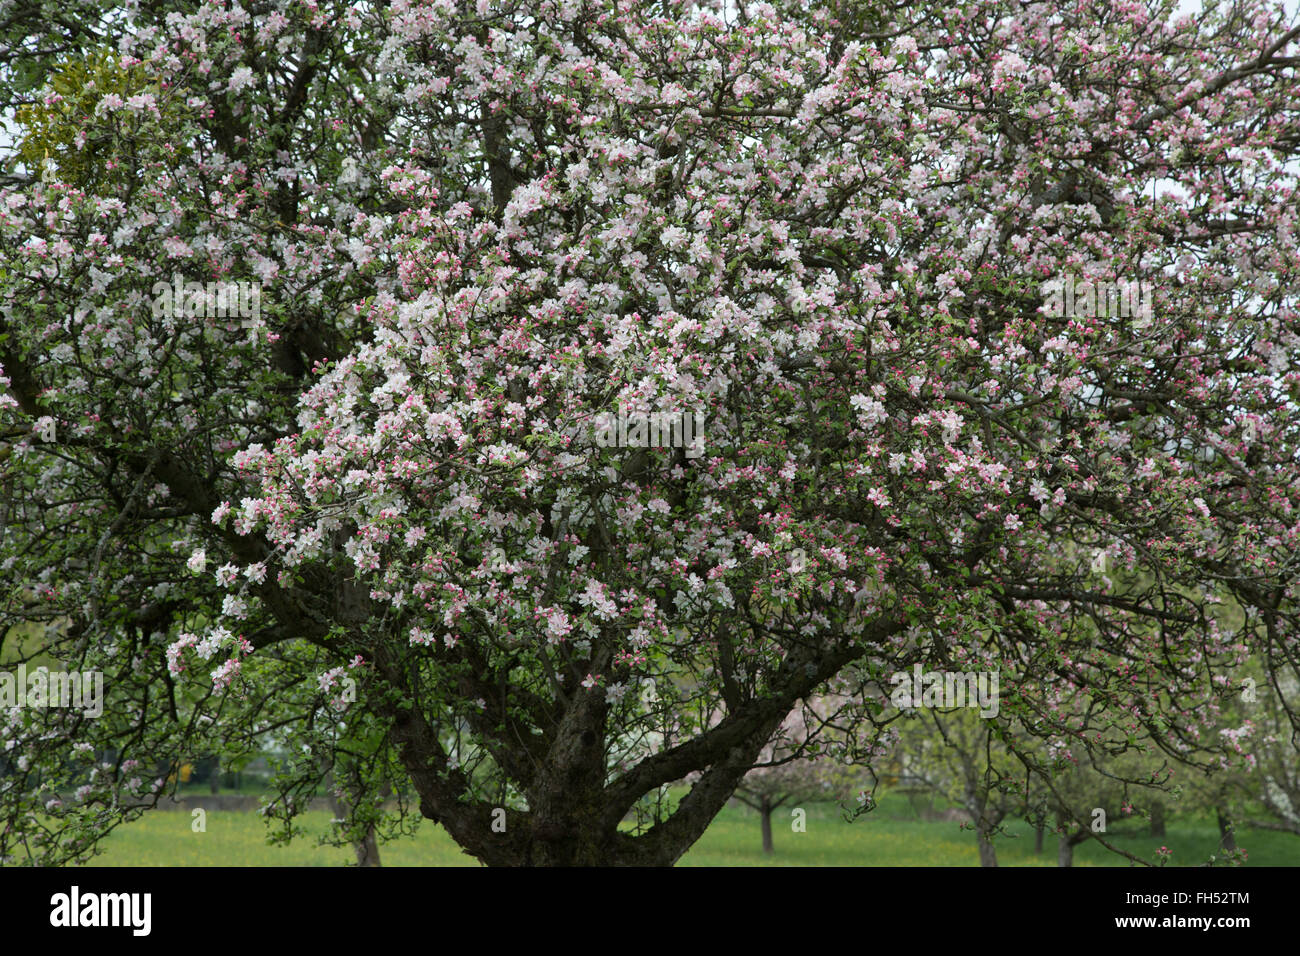 blooming apple tree on clouded day - Stock Image